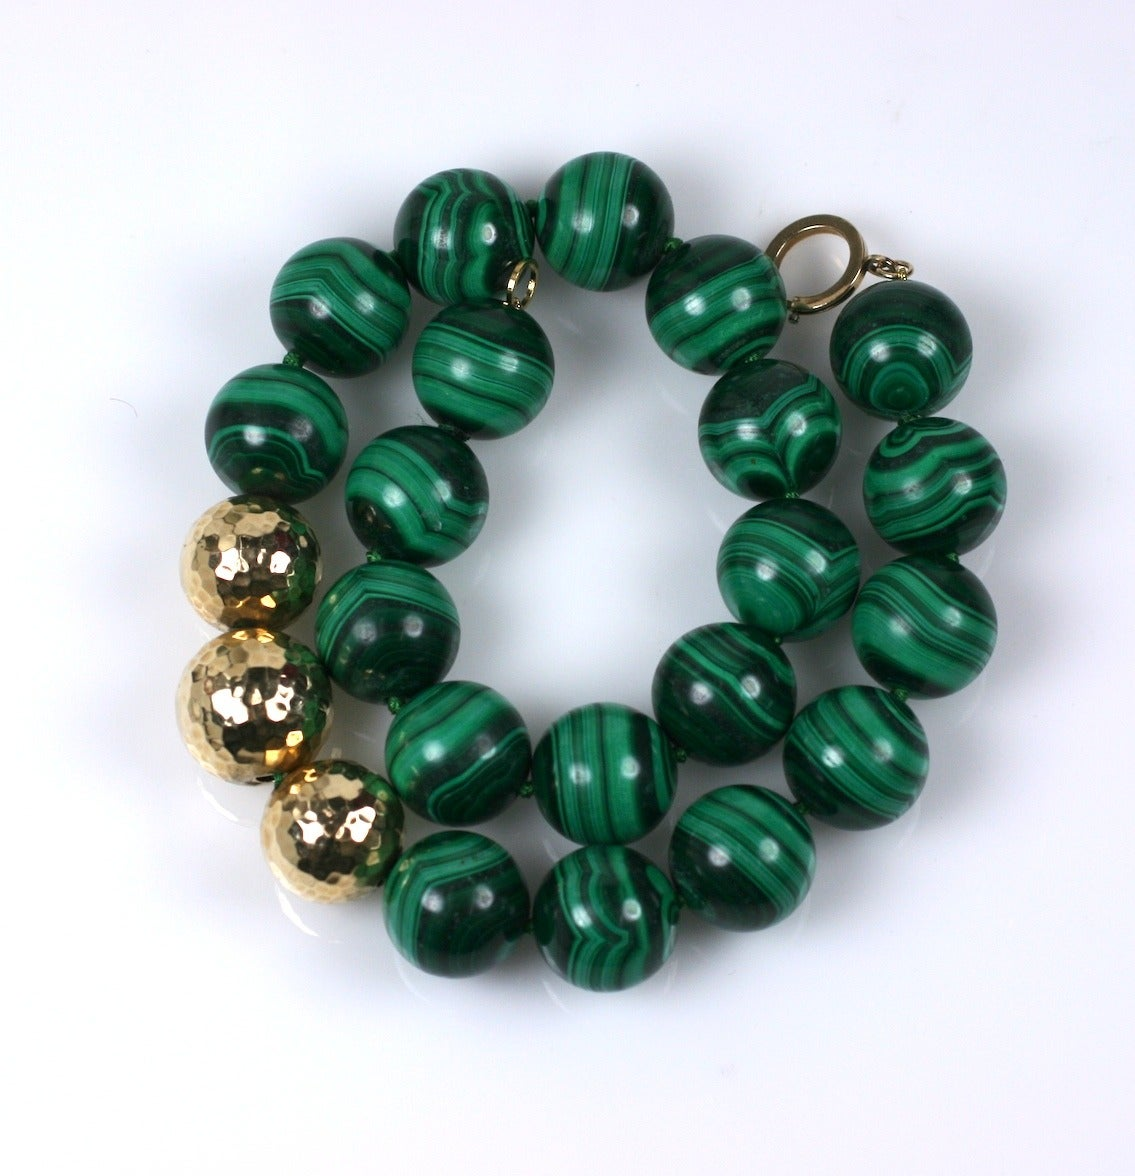 Oversized hand knotted Malachite beads are accented with 3 large hammered 14k gold beads. Attractive and wearable classic. Beads 20mm. Length 20